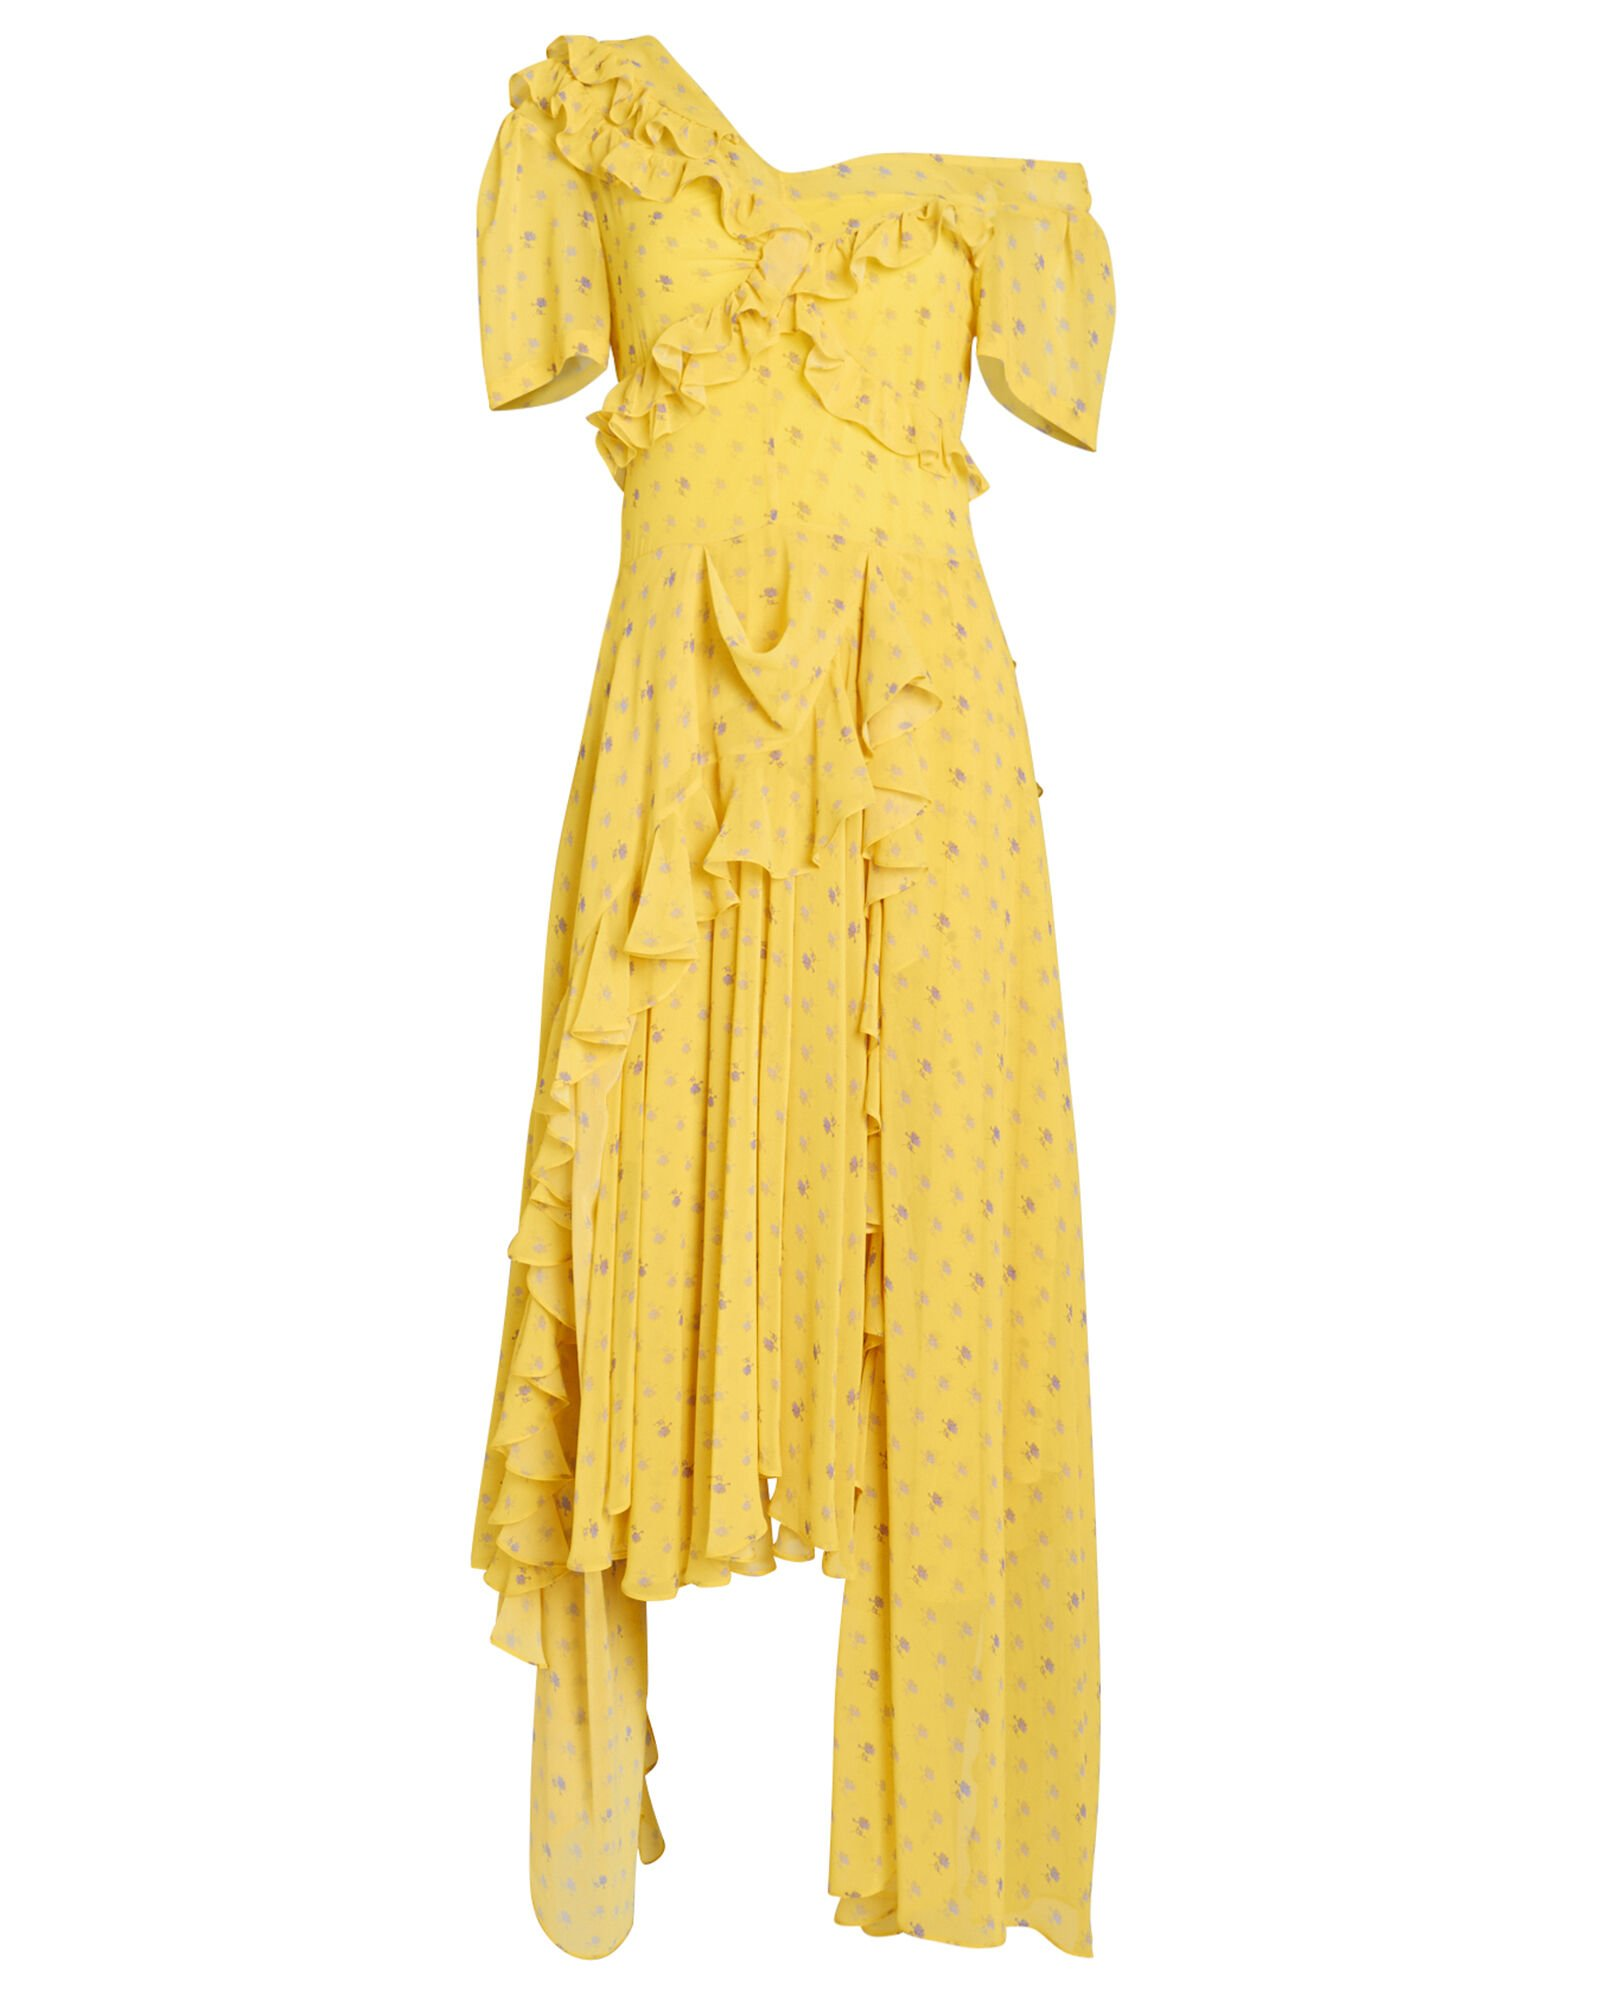 Kennedy Floral Georgette Asymmetric Dress, YELLOW/FLORAL, hi-res